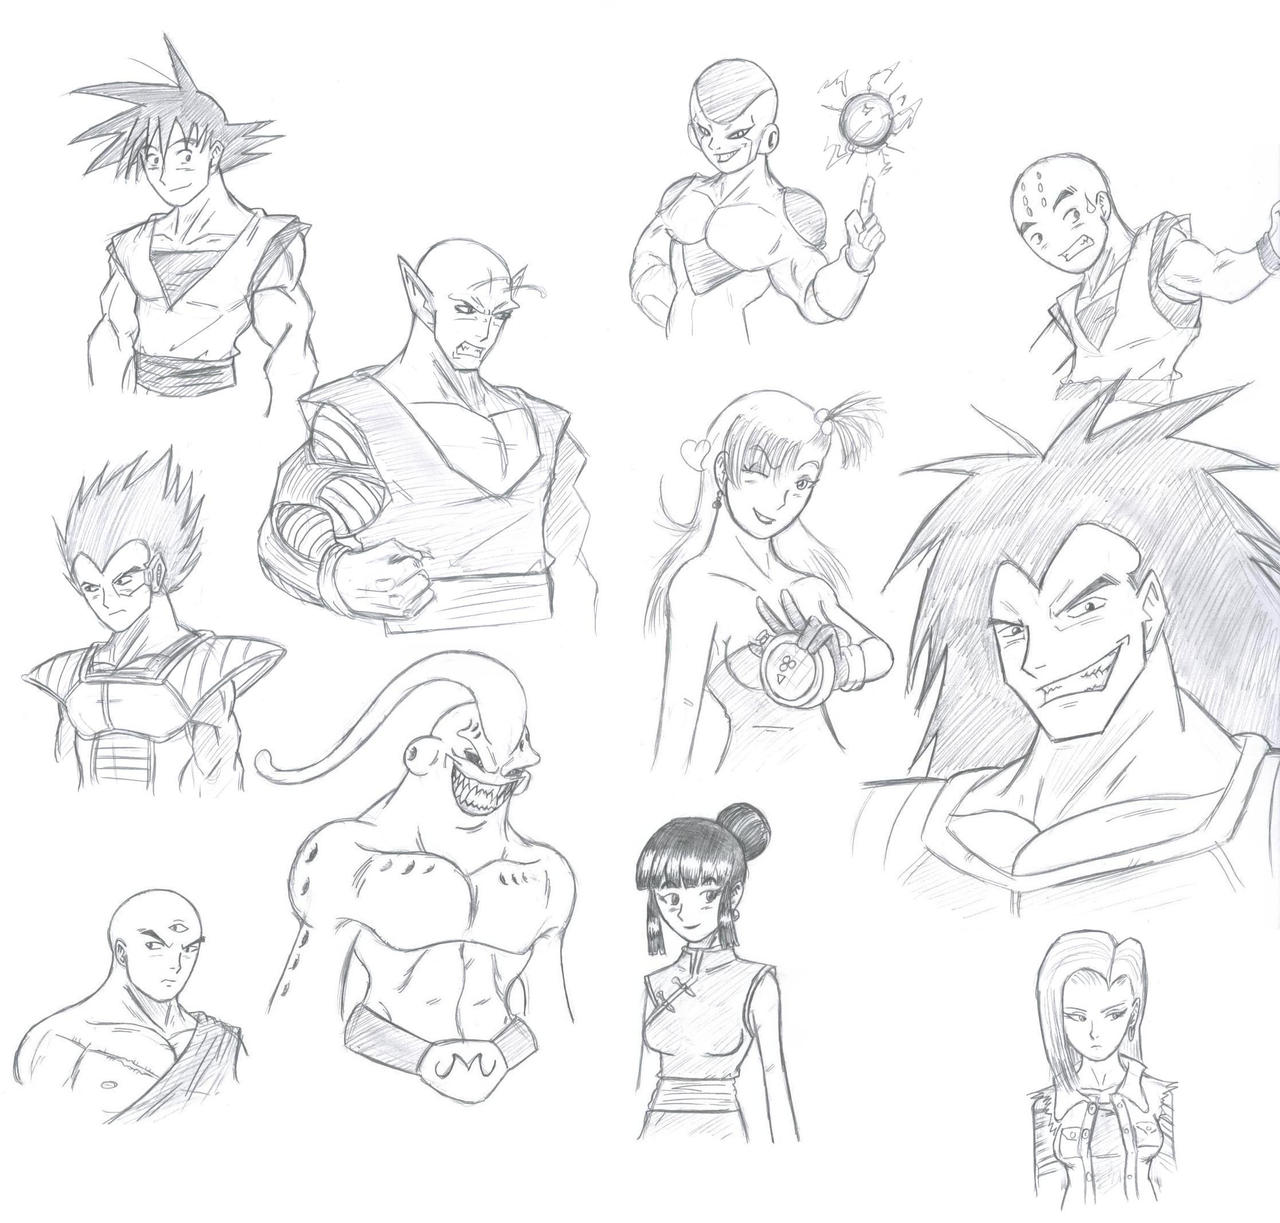 Exceptionnel DBZ characters in my style by ChaosGhidorah on DeviantArt NM44